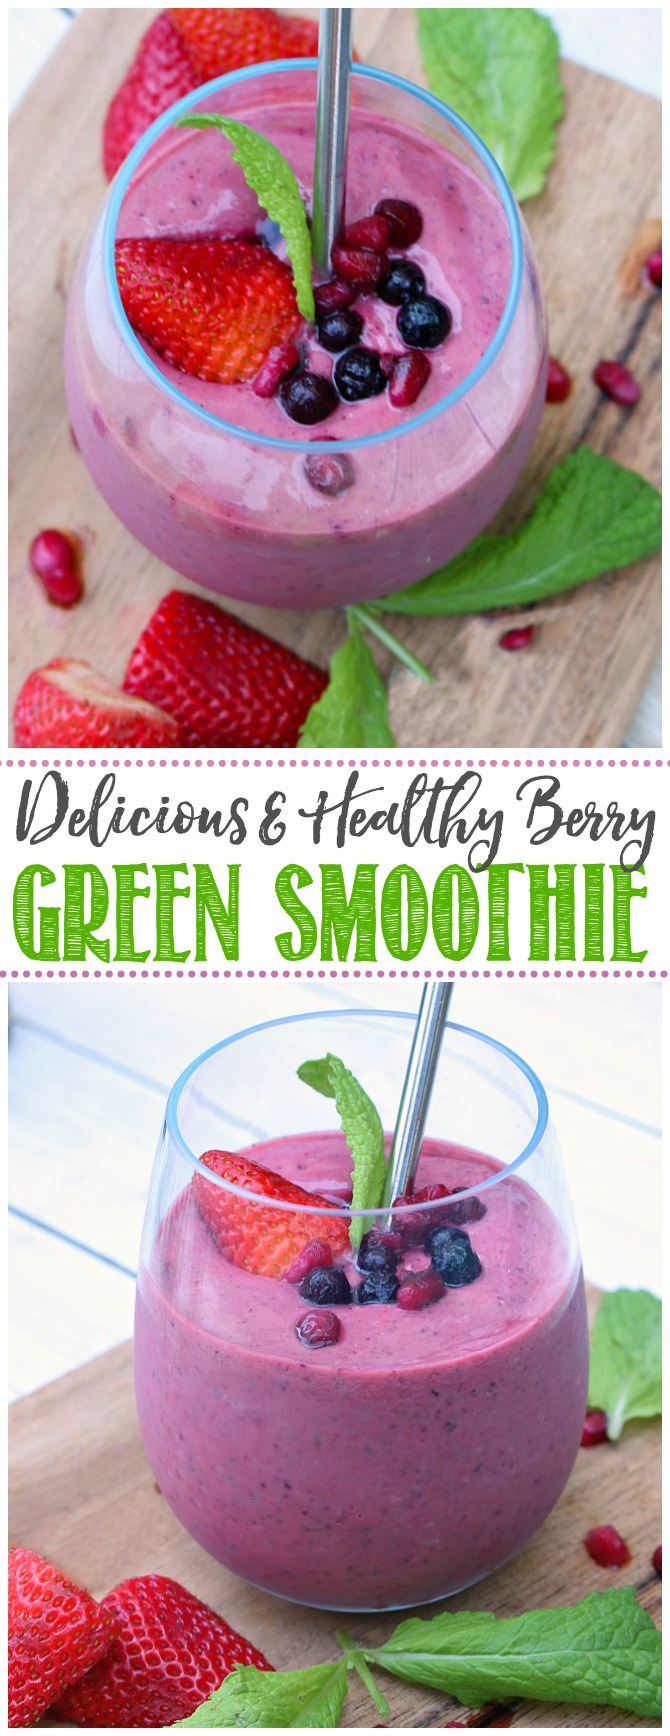 Berry green smoothie with blueberries, strawberries, pomegranate seeds for garnish.